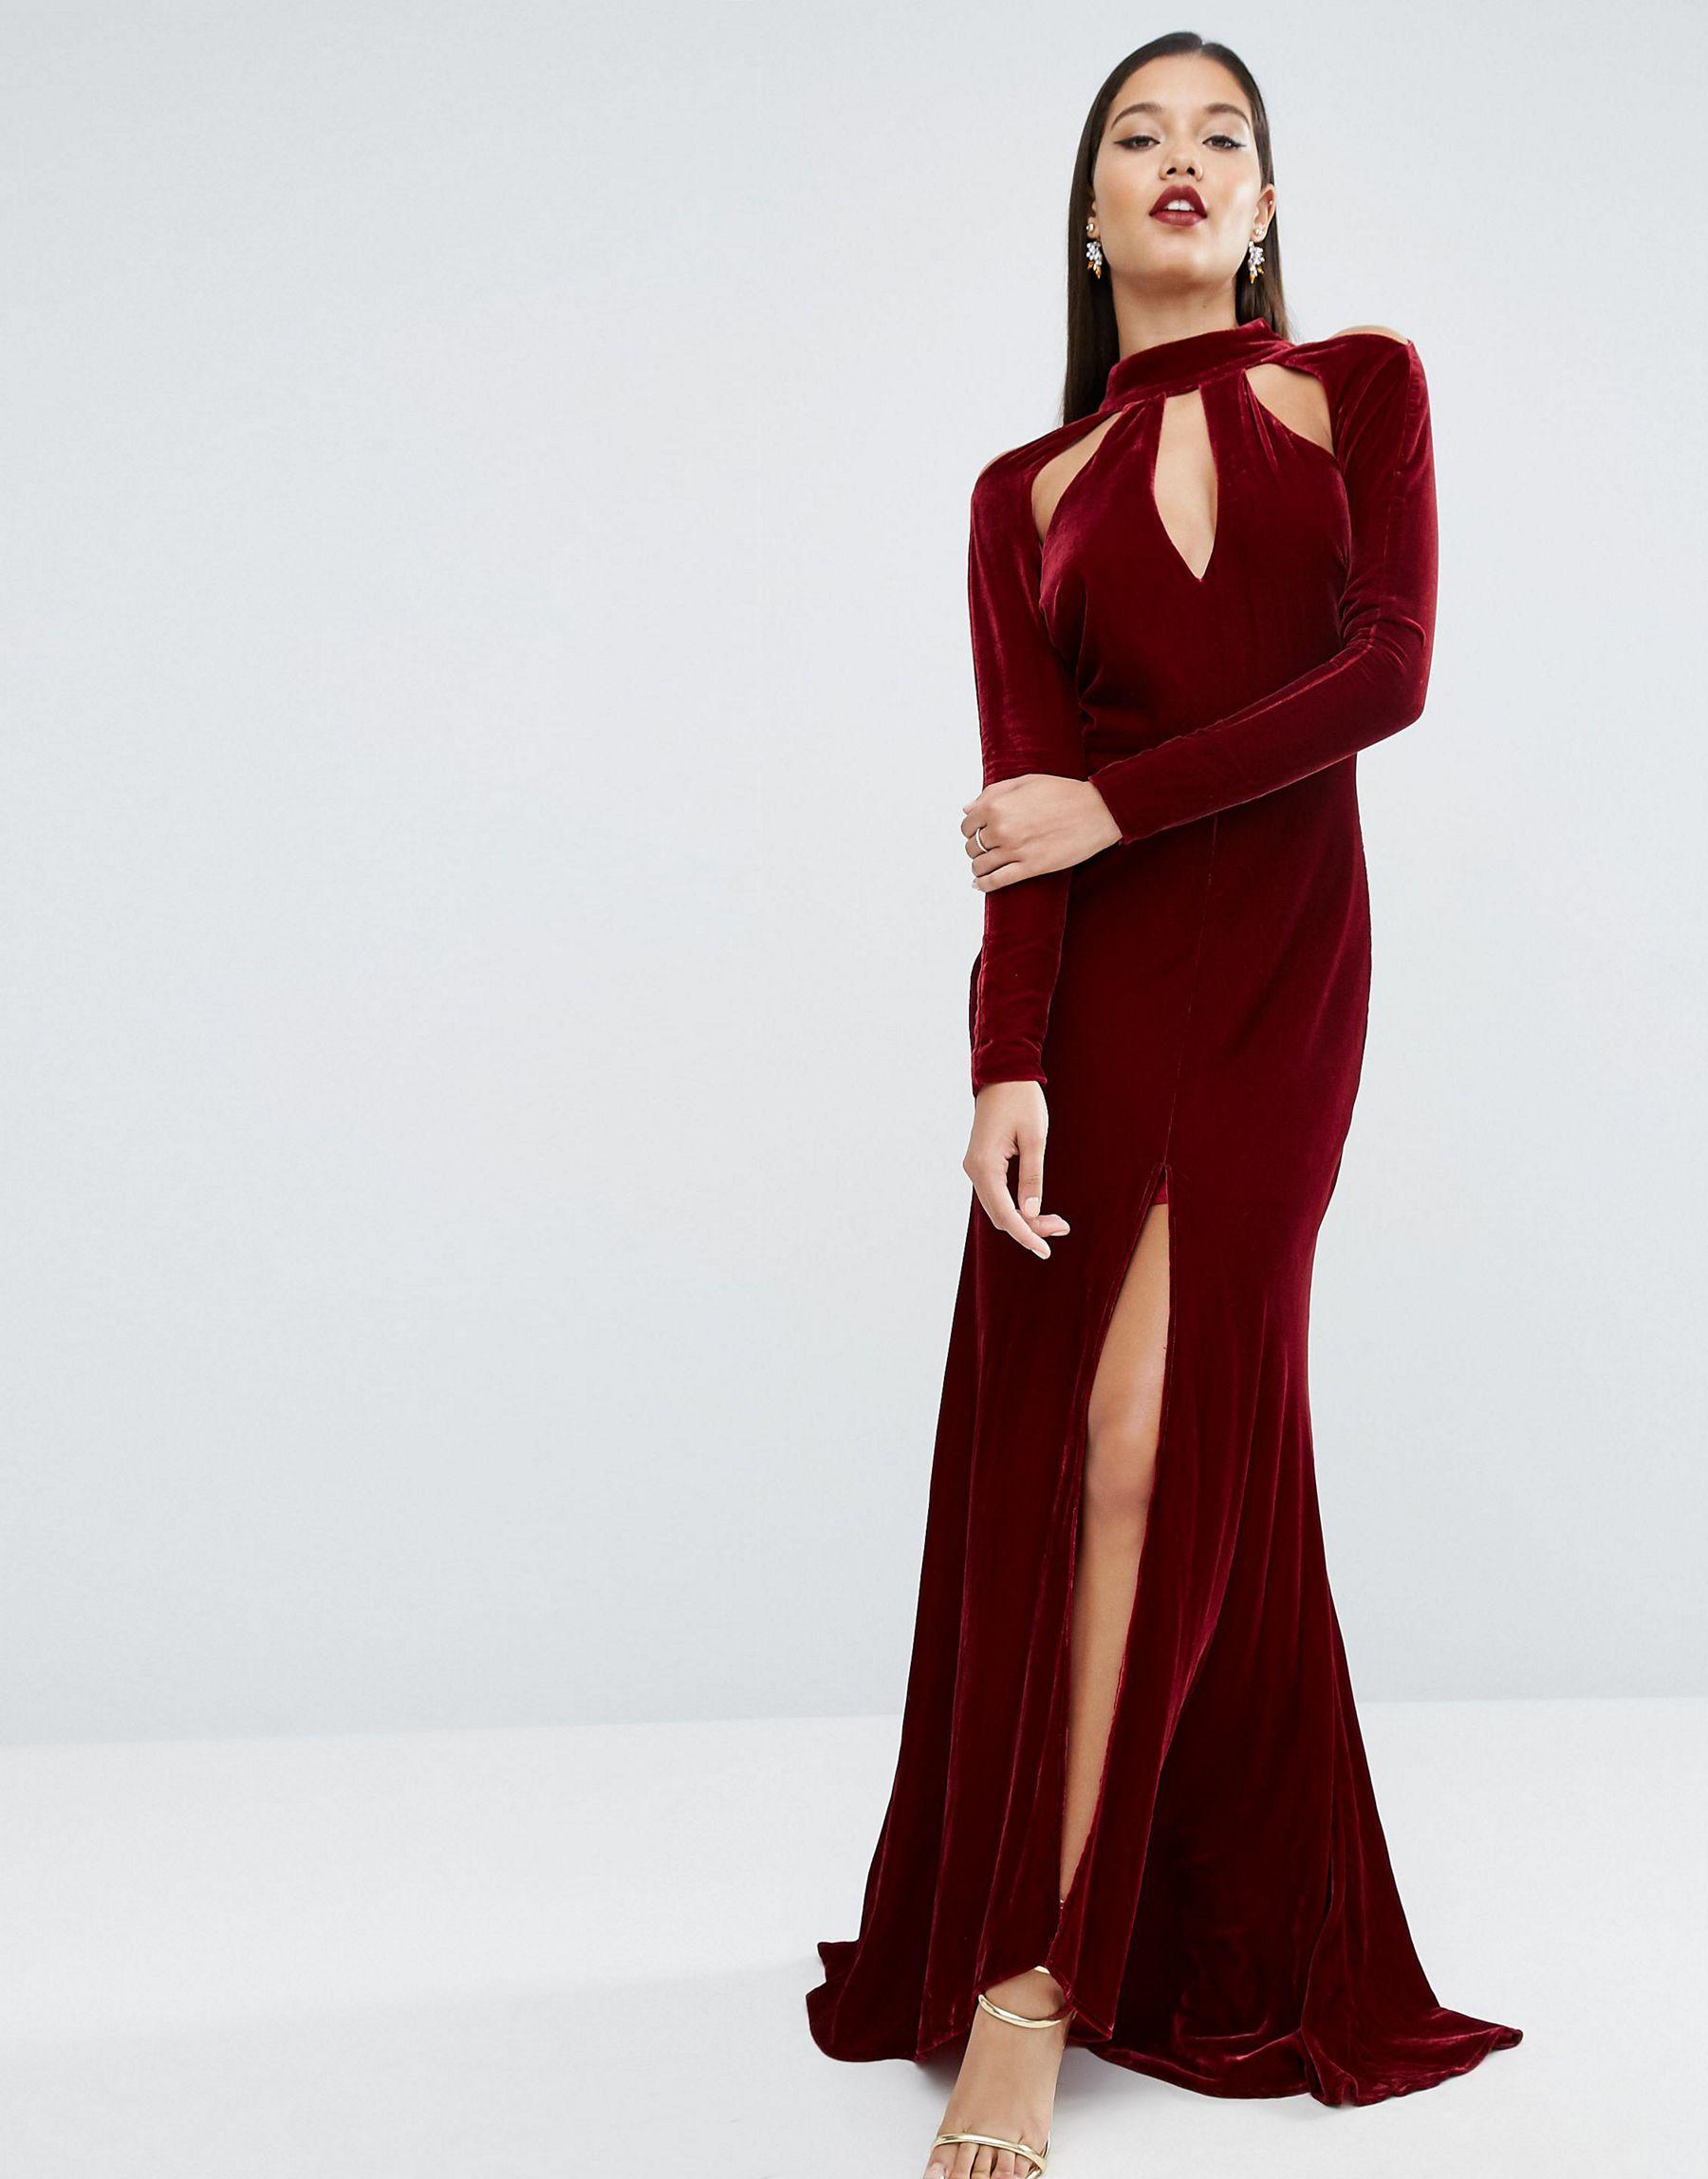 1a2a18ace0 ASOS Red Carpet Velvet Keyhole Fishtail Maxi Dress in Red - Lyst